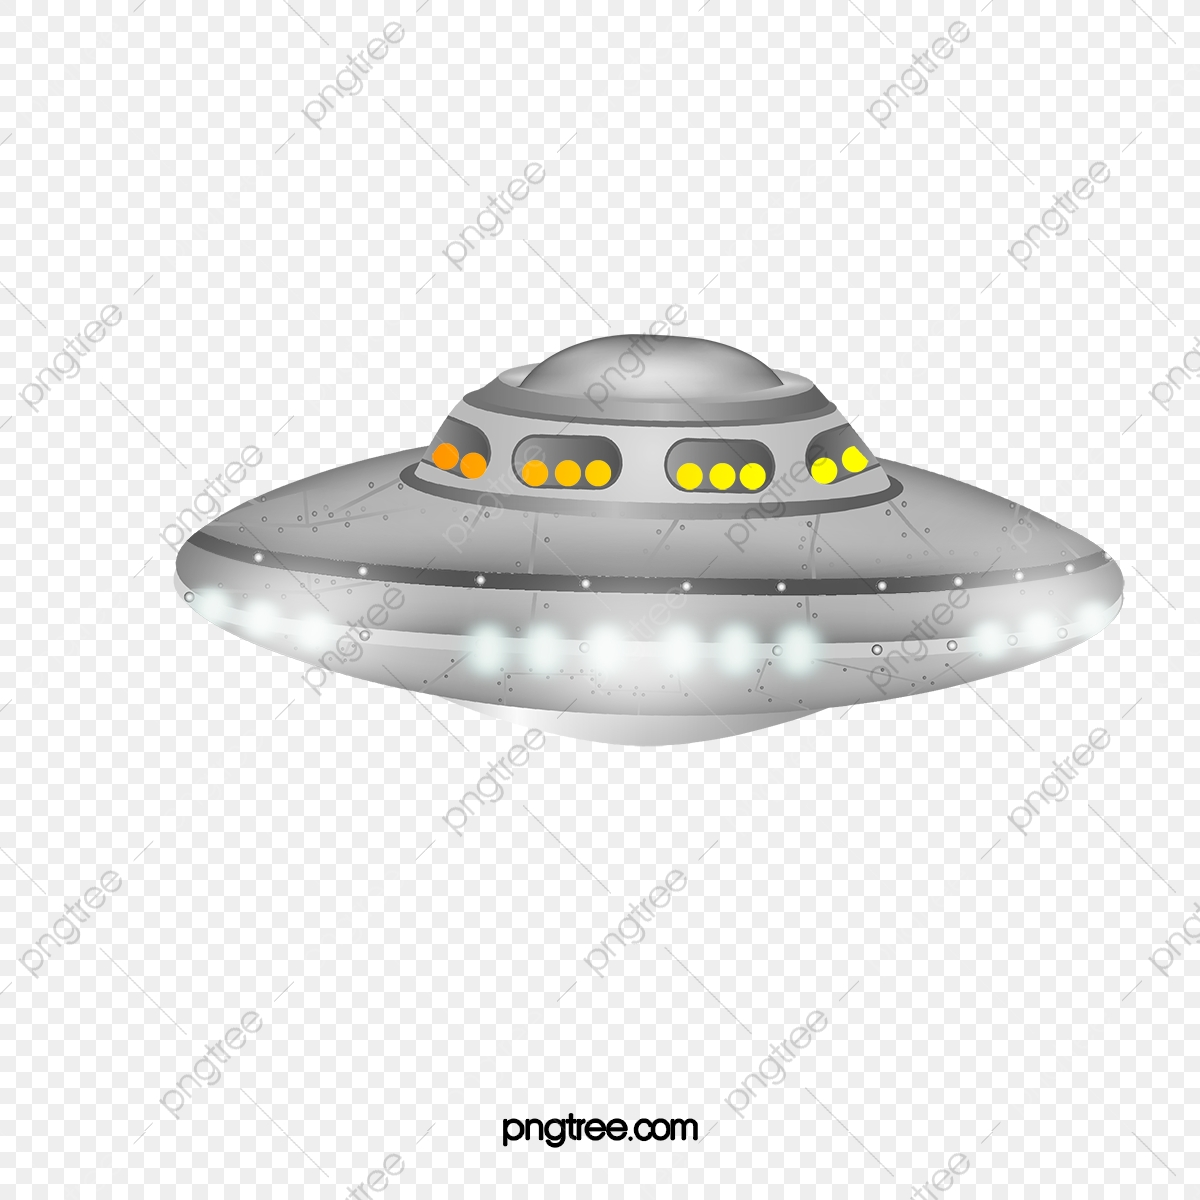 Ufo Ufo Clipart Alien Png Transparent Clipart Image And Psd File For Free Download Use these free ufo png #2101 for your personal projects or designs. https pngtree com freepng ufo 1632147 html